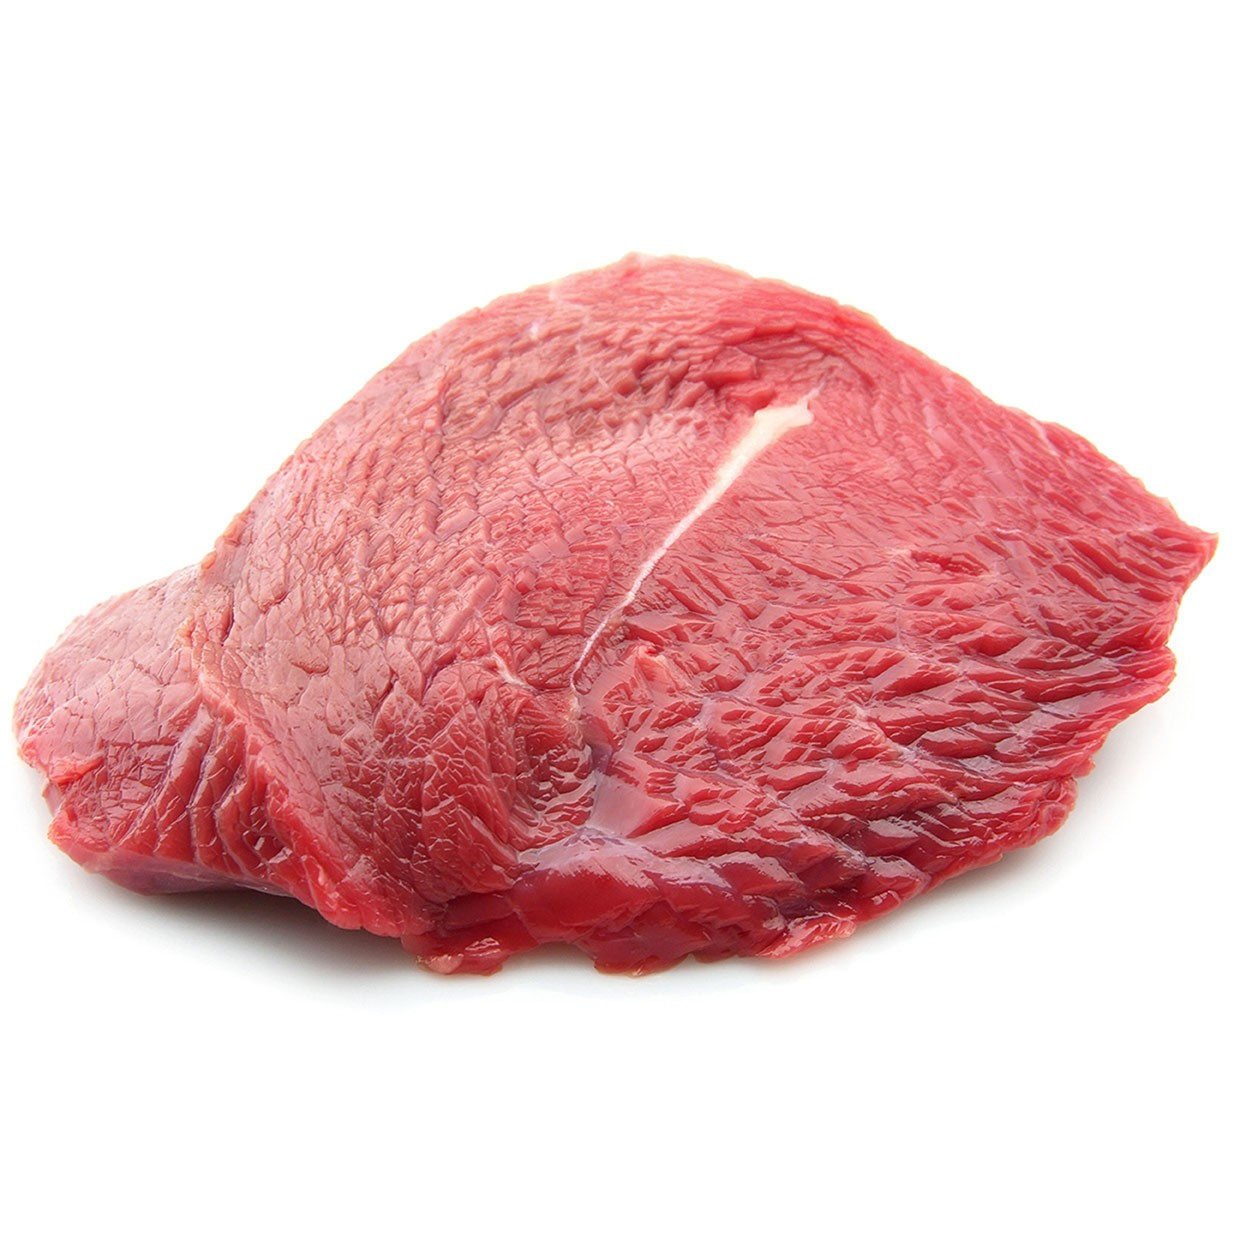 Steak BIO (x 1, environ 130-160 g)